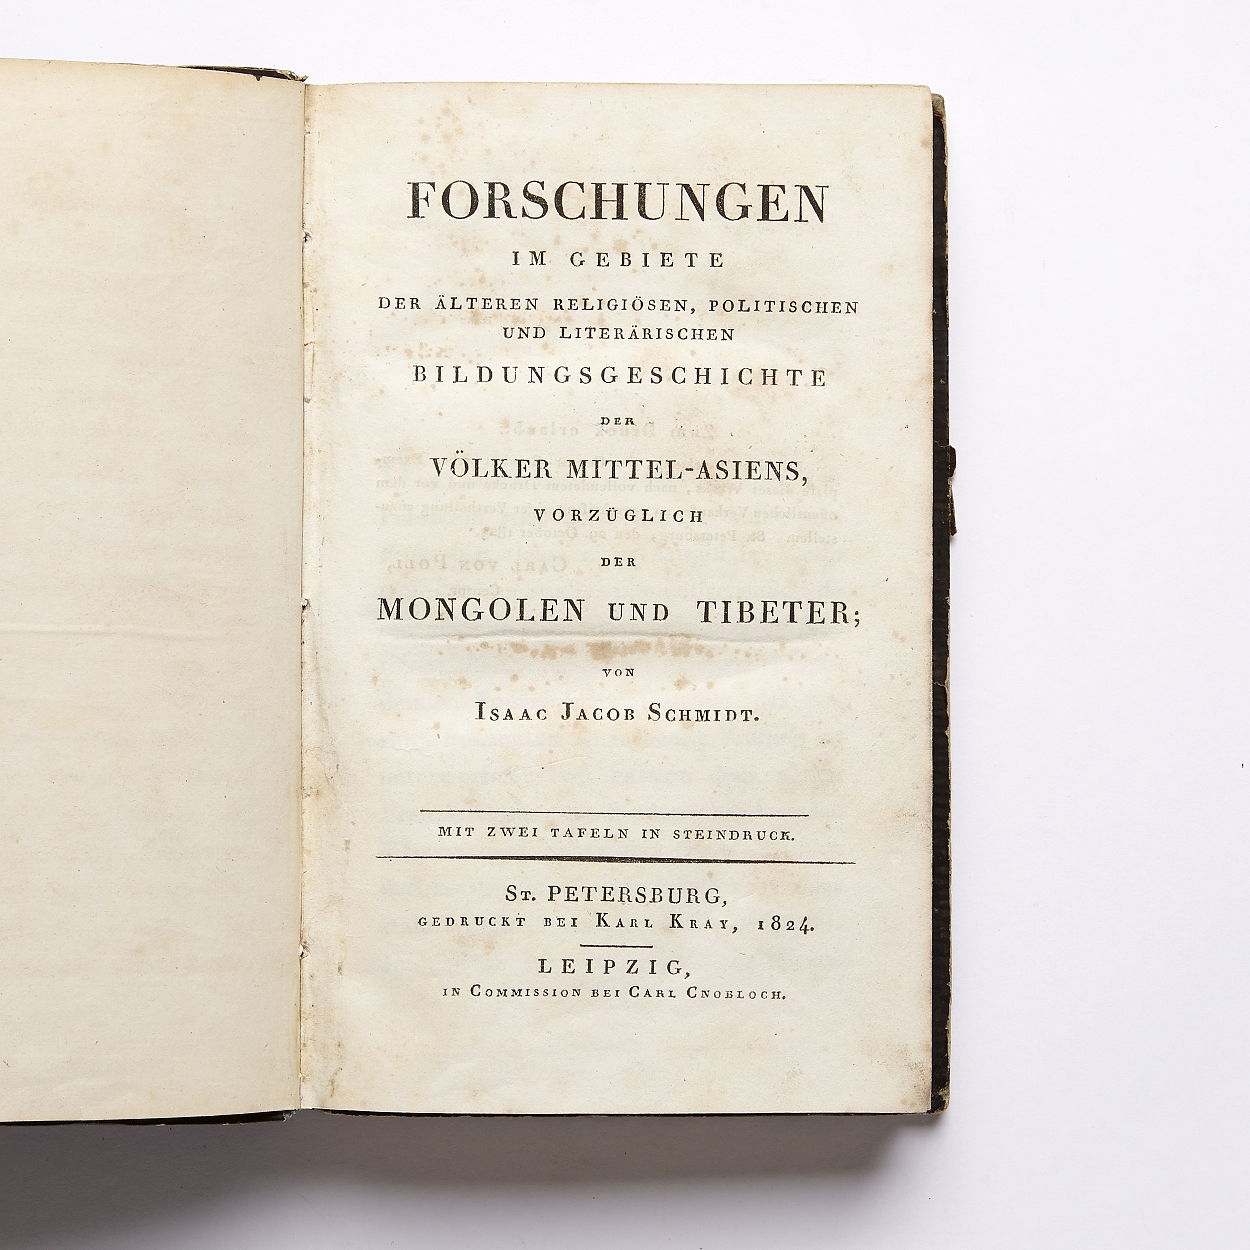 On religion a.o. of Mongols and Tibetans 1824